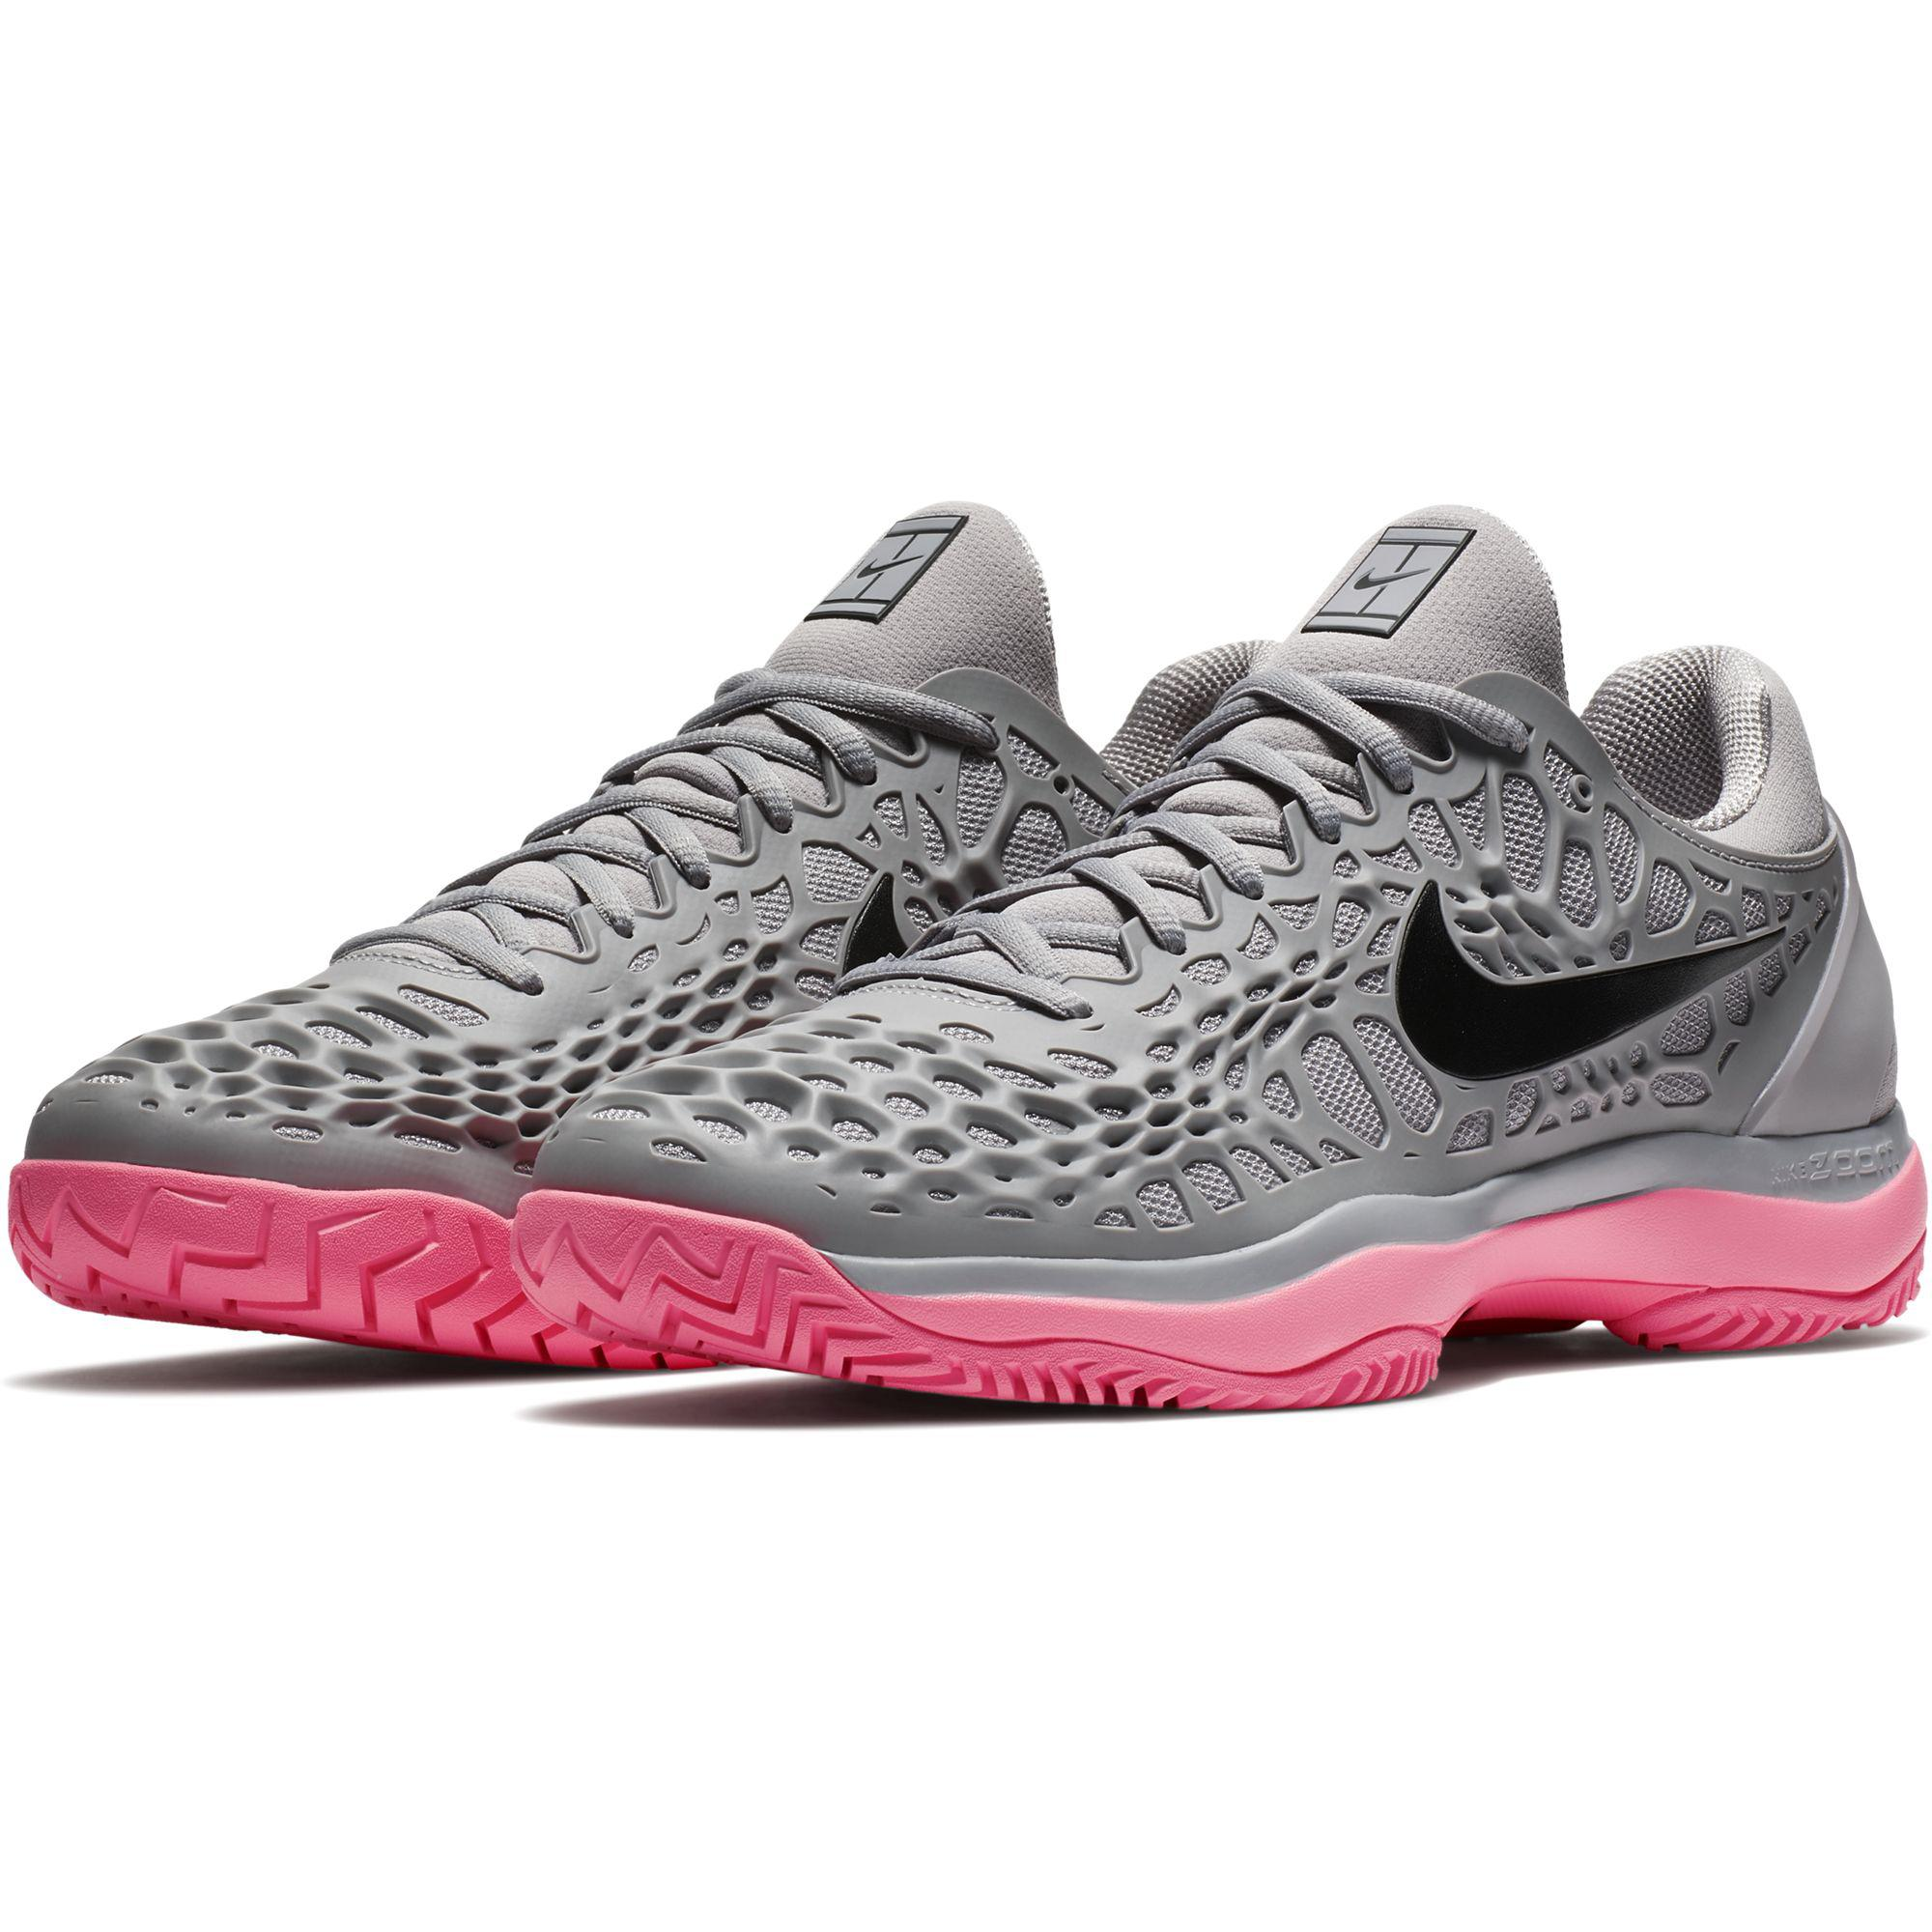 huge selection of 991a3 181b6 Nike Mens Air Zoom Cage 3 Rafa Tennis Shoes - Grey Sunset Pulse